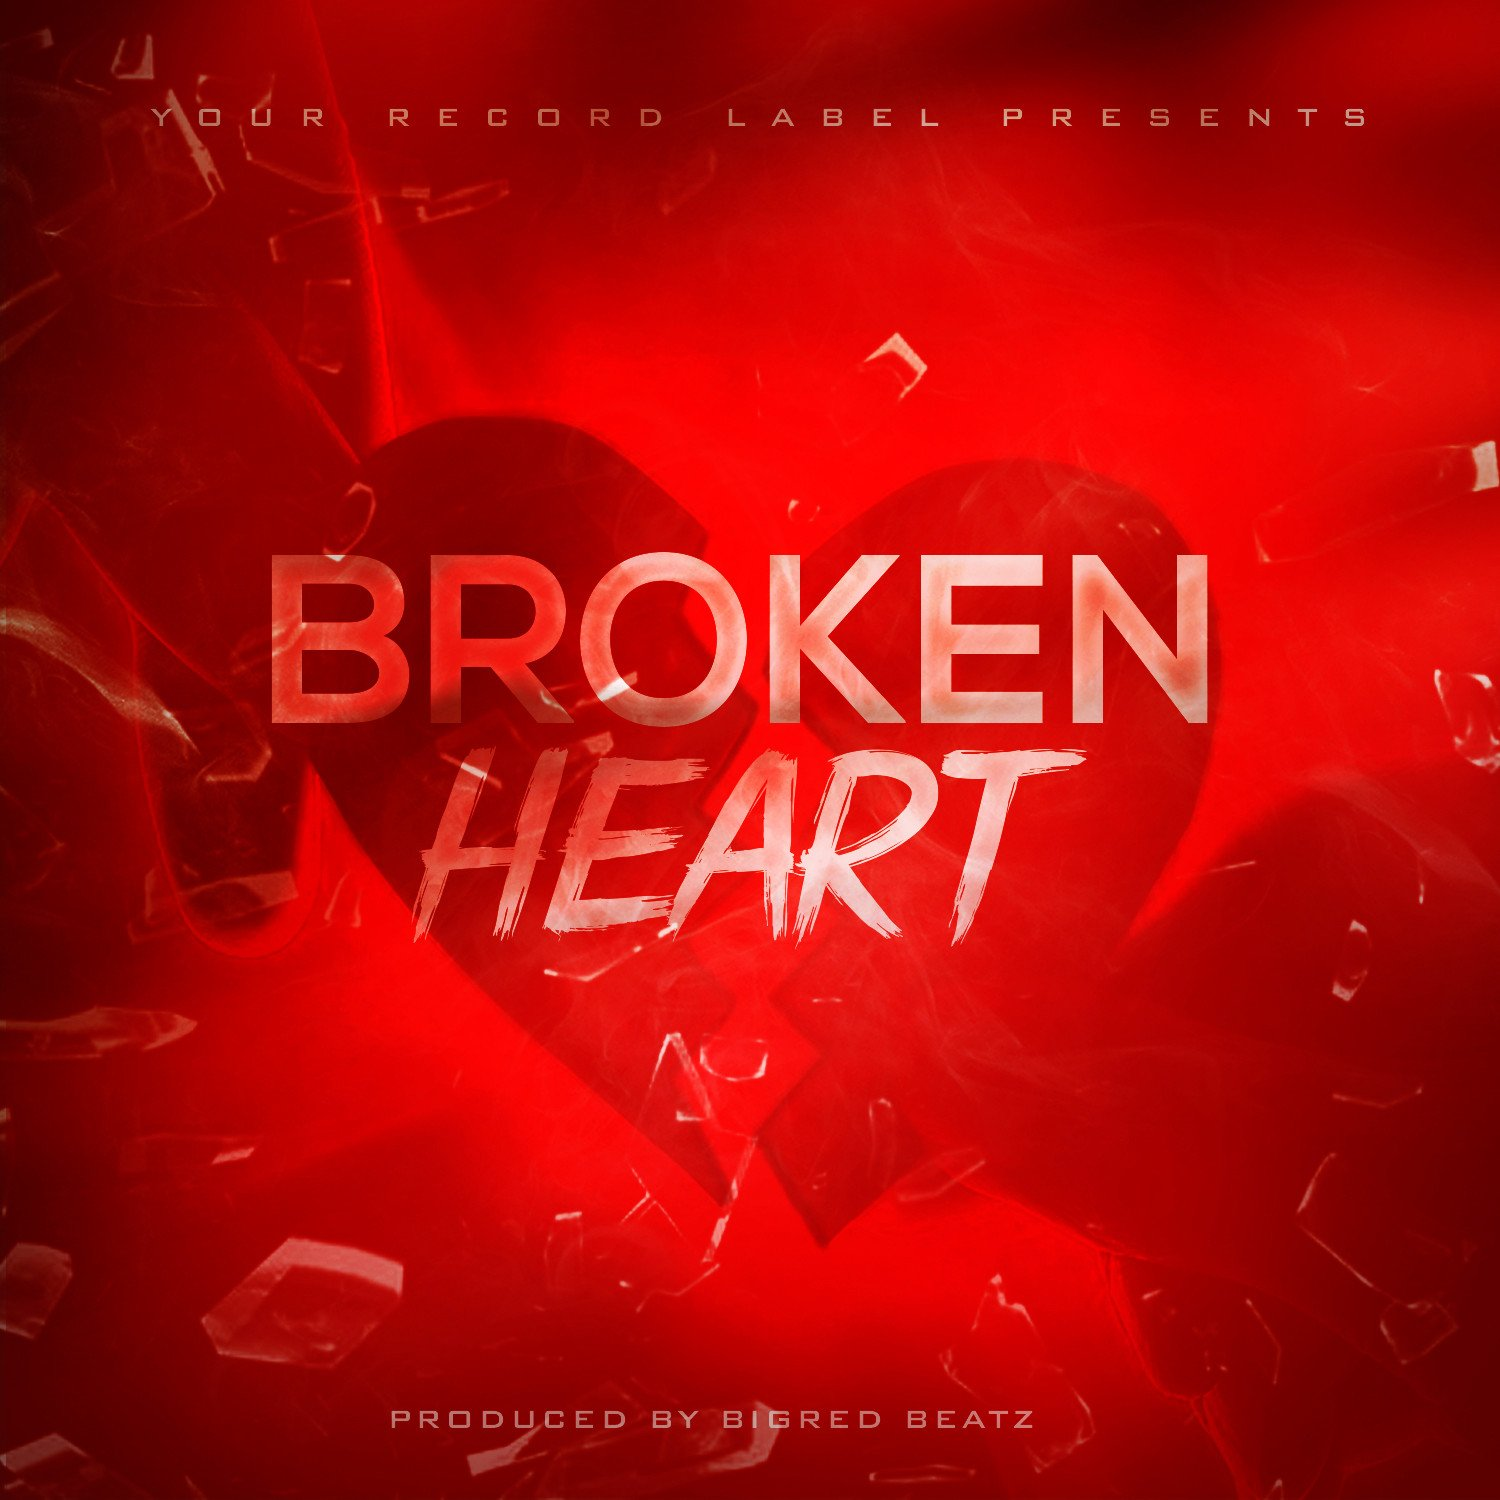 Free Mixtape Cover Templates Broken Hearts Free Album Cover Template